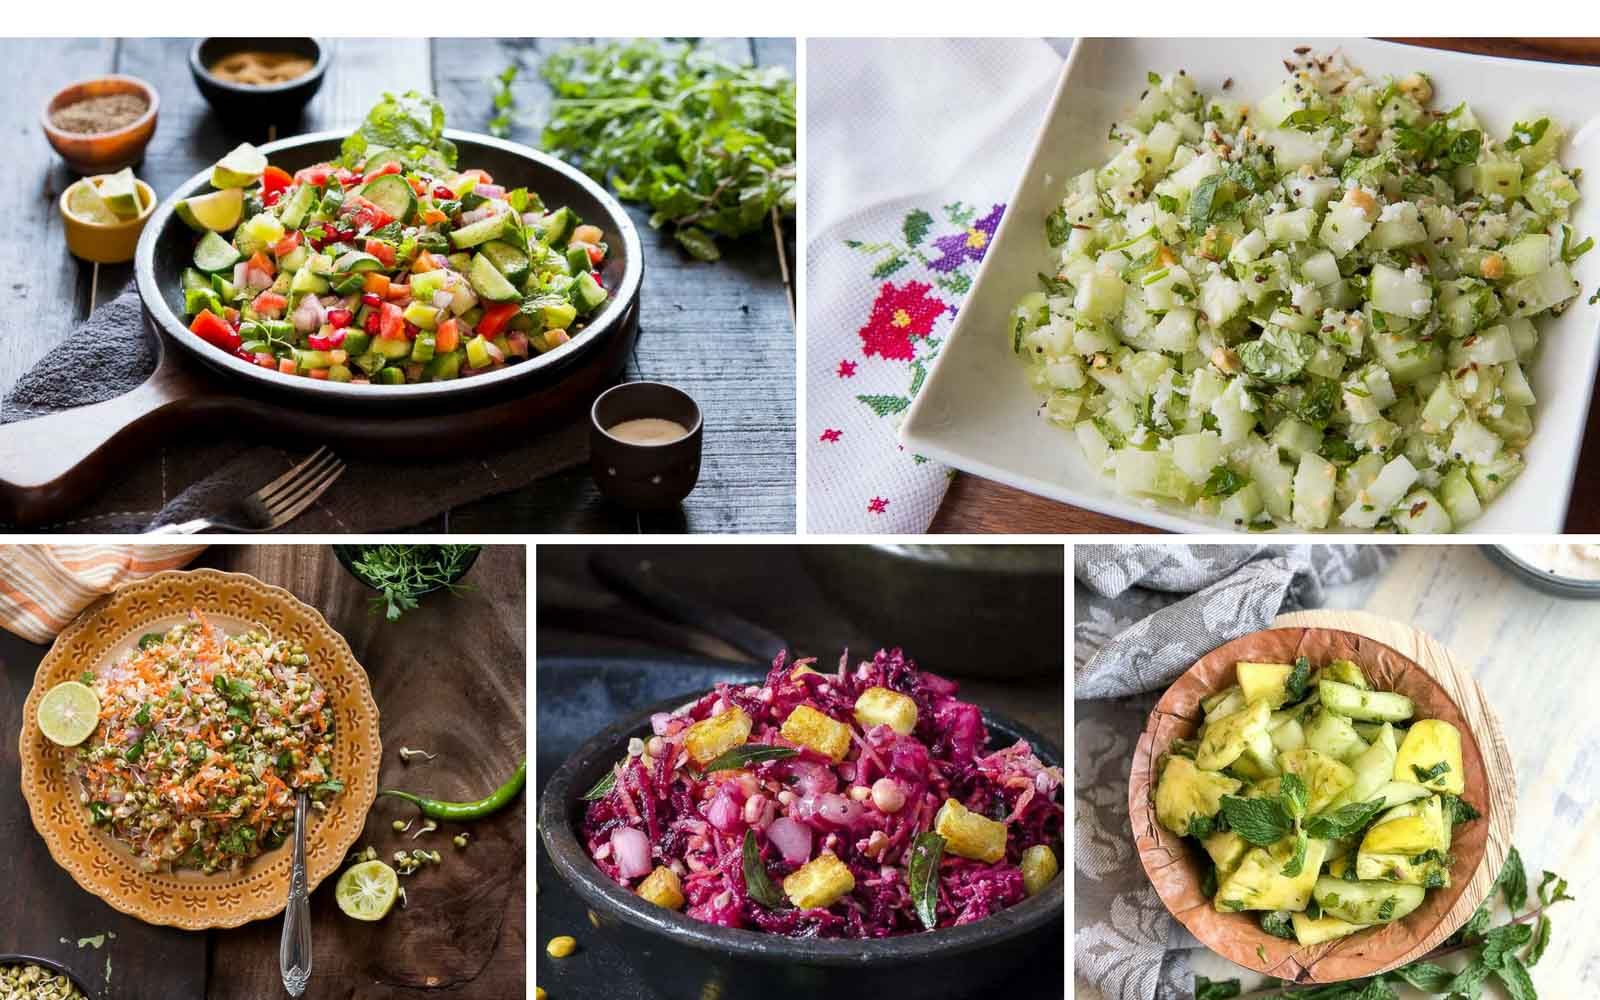 32 Super Healthy Indian Salad Recipes To Make Right Now By Archana S Kitchen